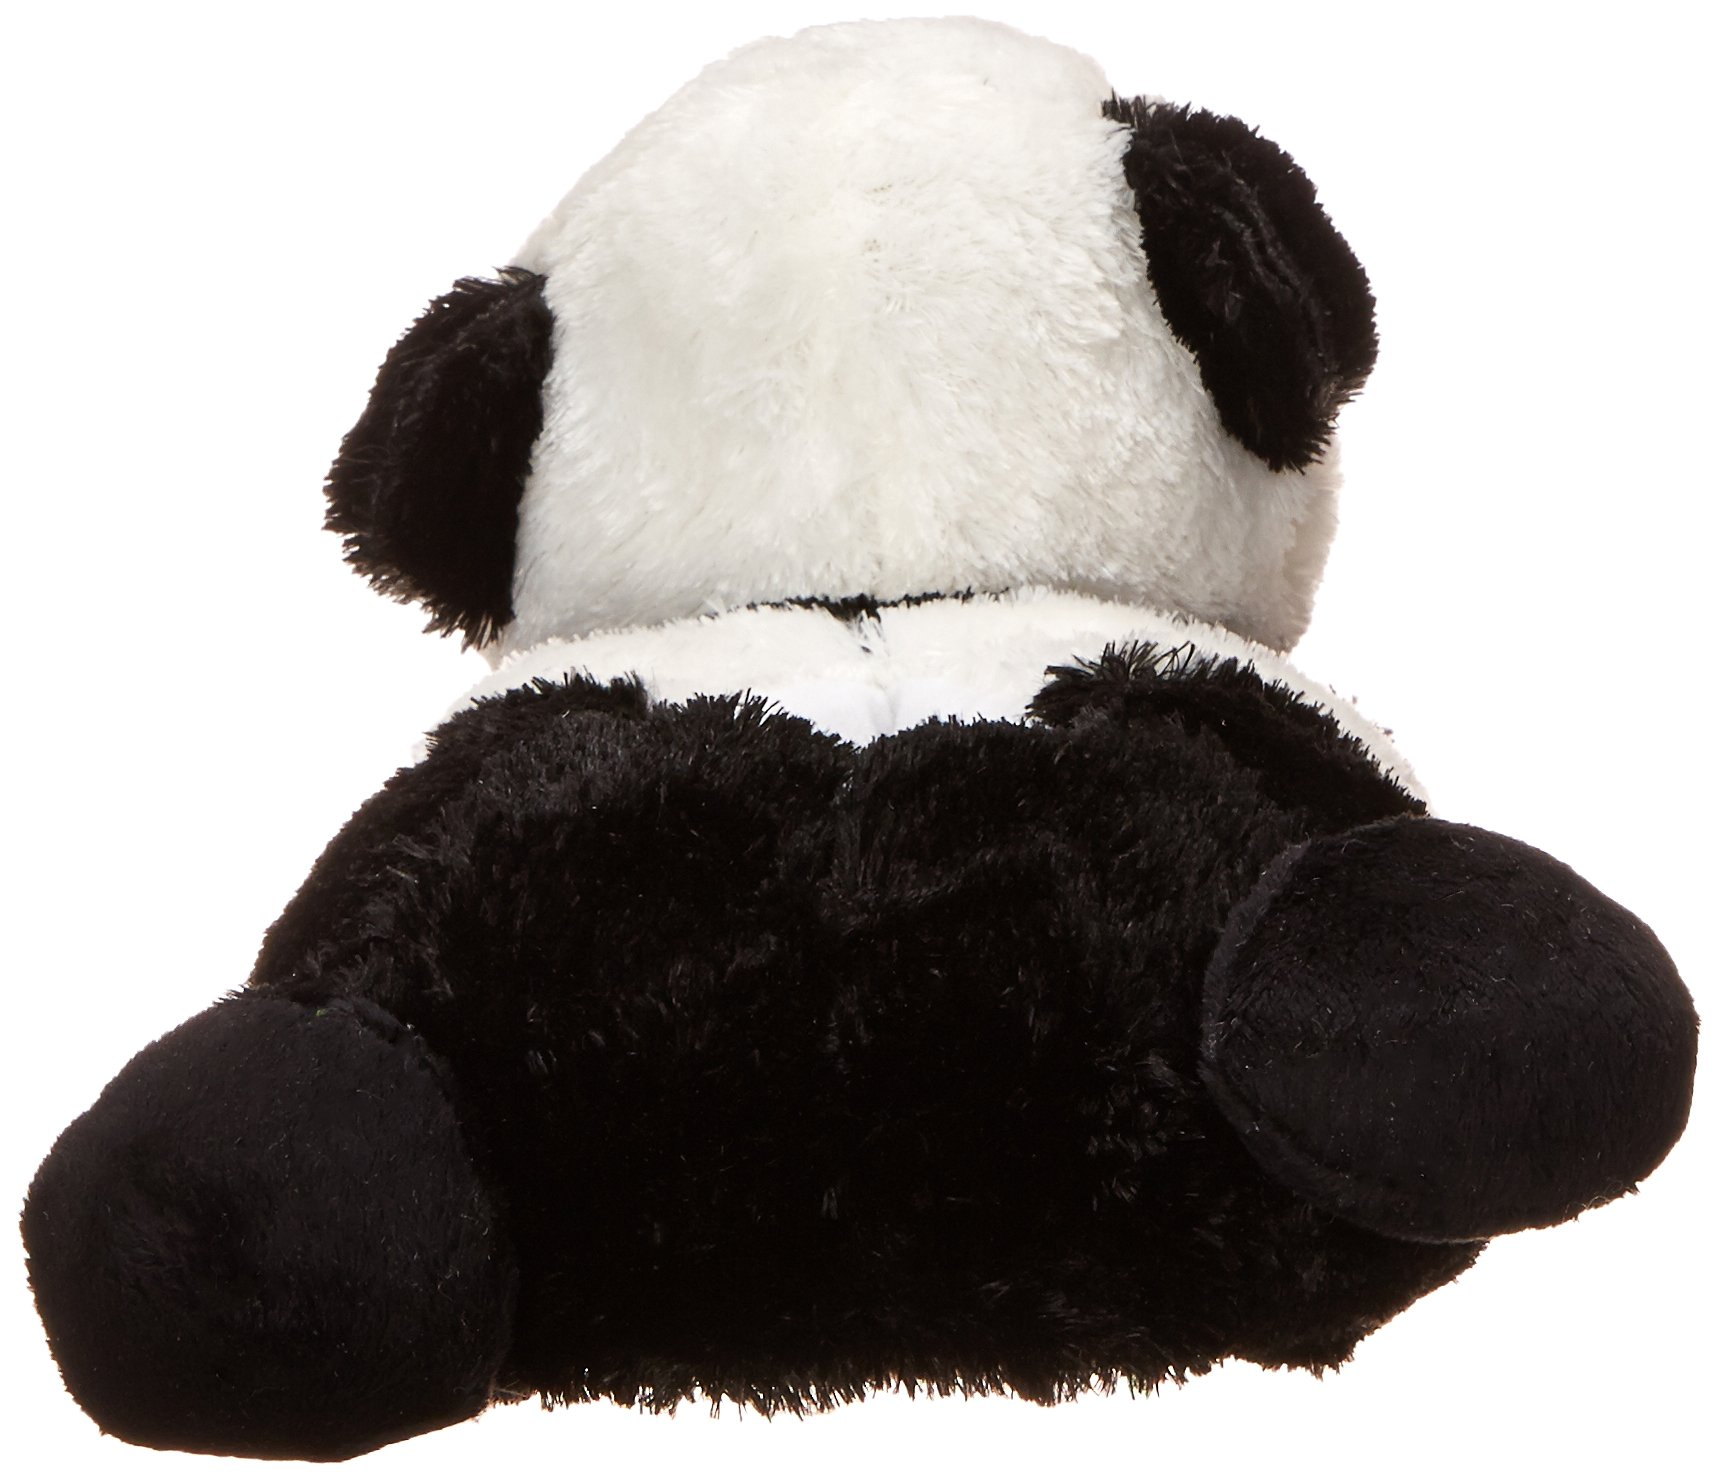 aaf1cd25a64f2 Adult M Size Unisex Black White Panda Animal Plush Fuzzy Slippers